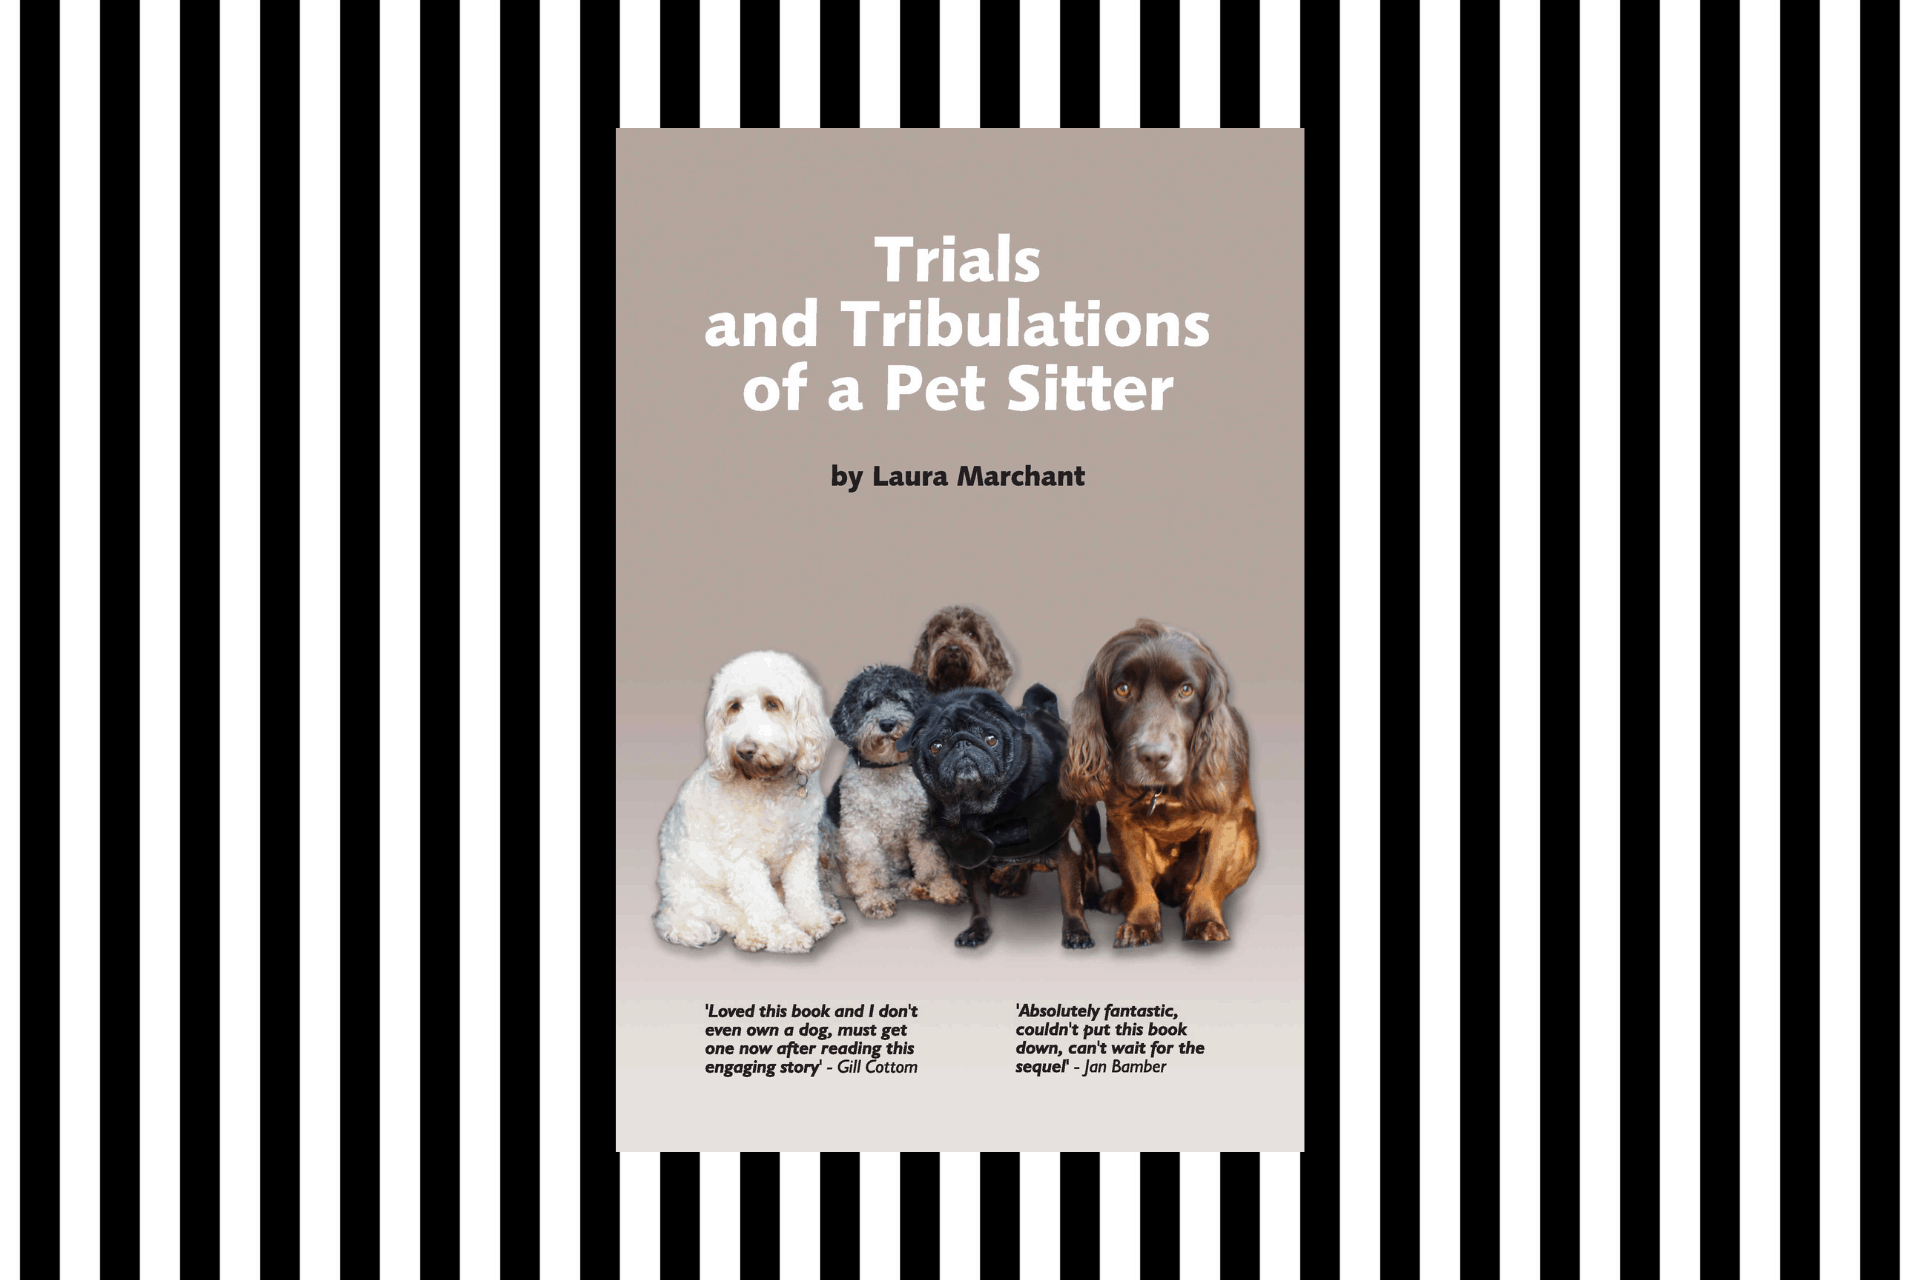 The cover of Trials and Tribulations of a Pet Sitter by Laura Marchant